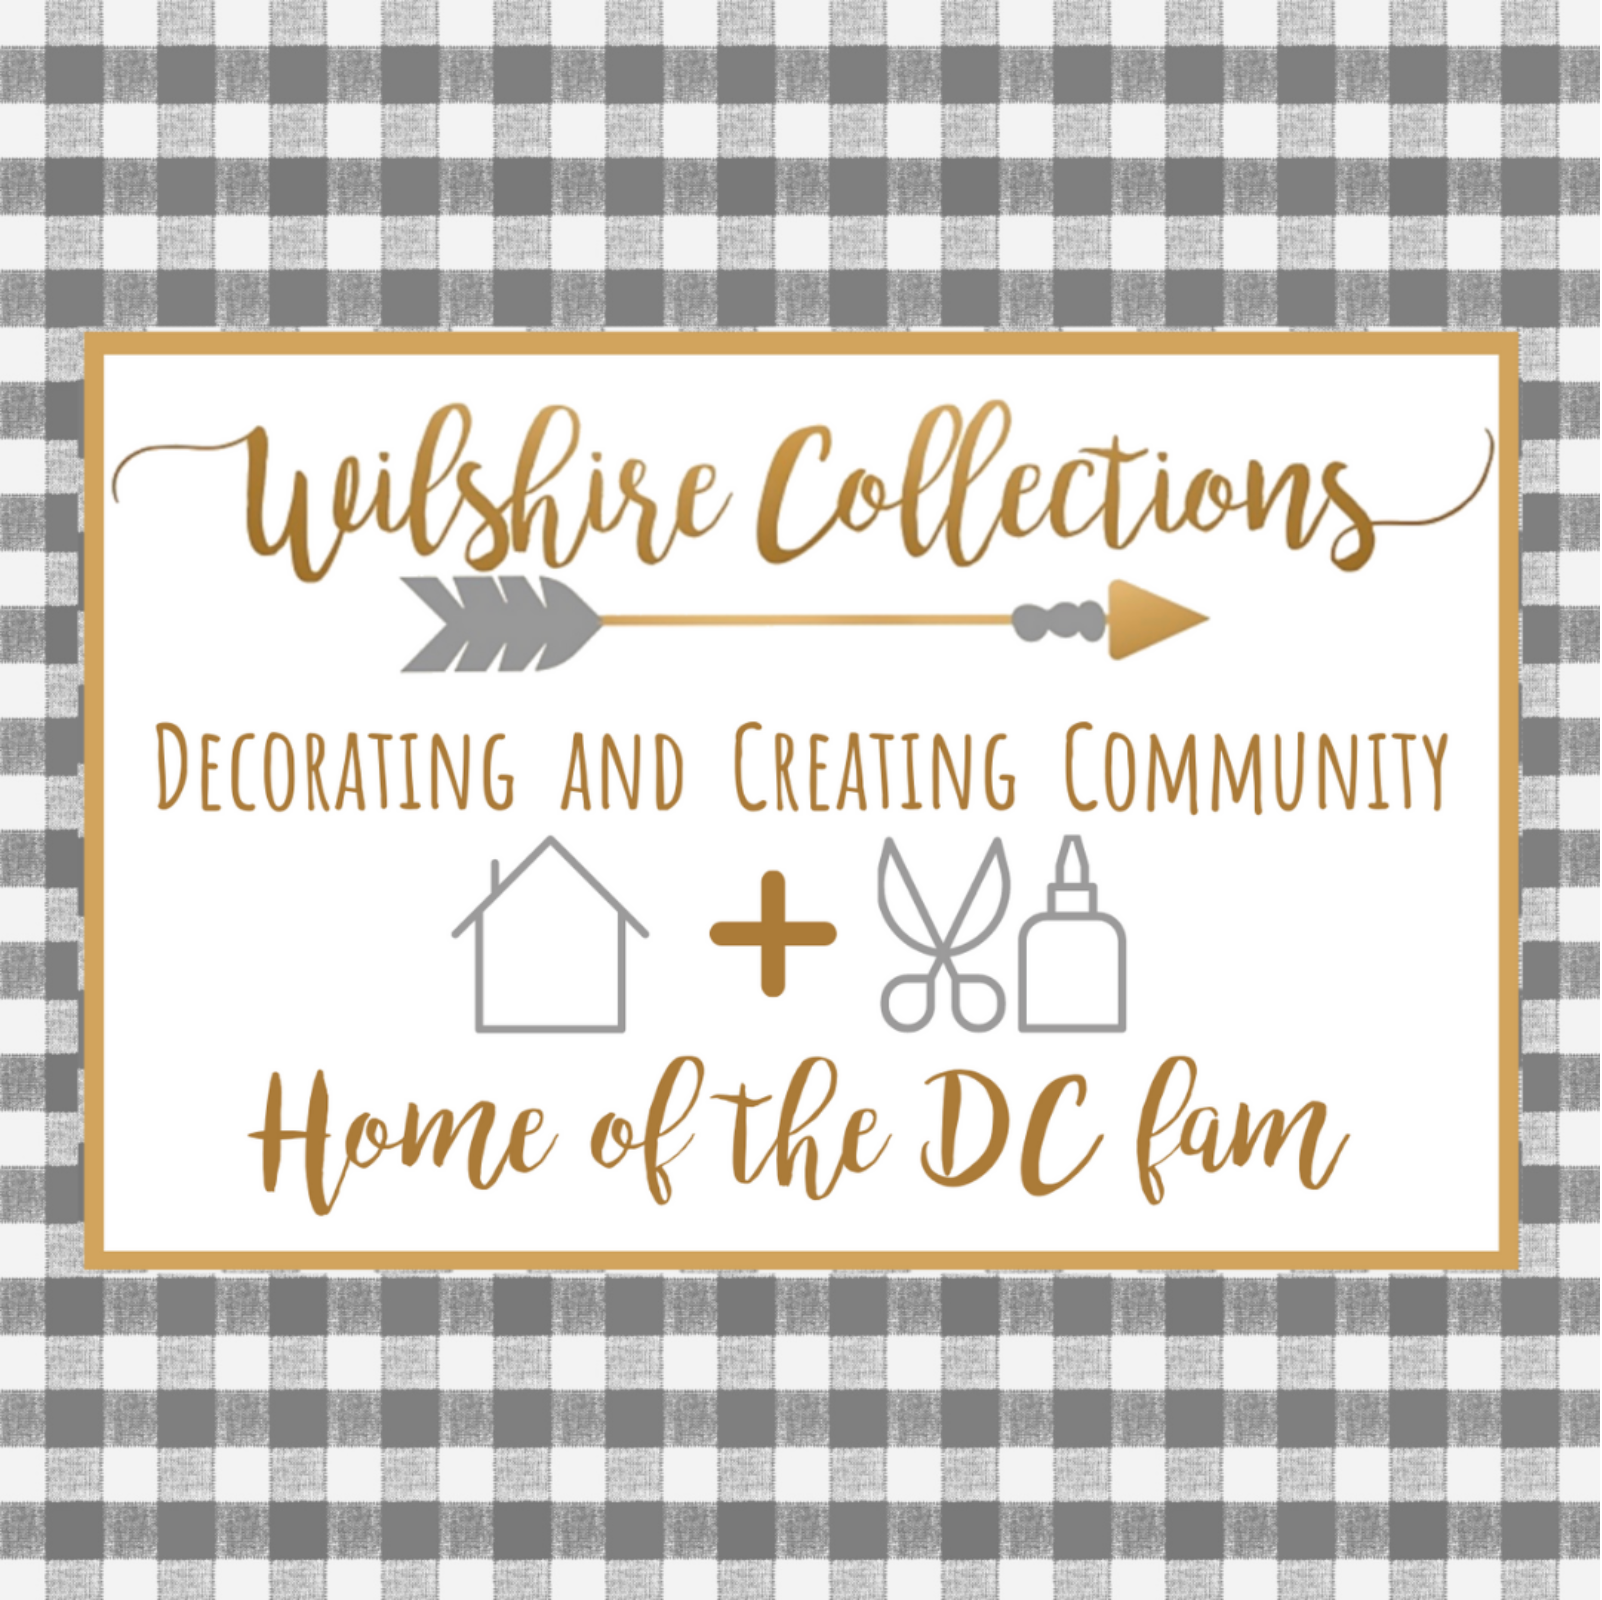 wilshire collections decorating and creating community